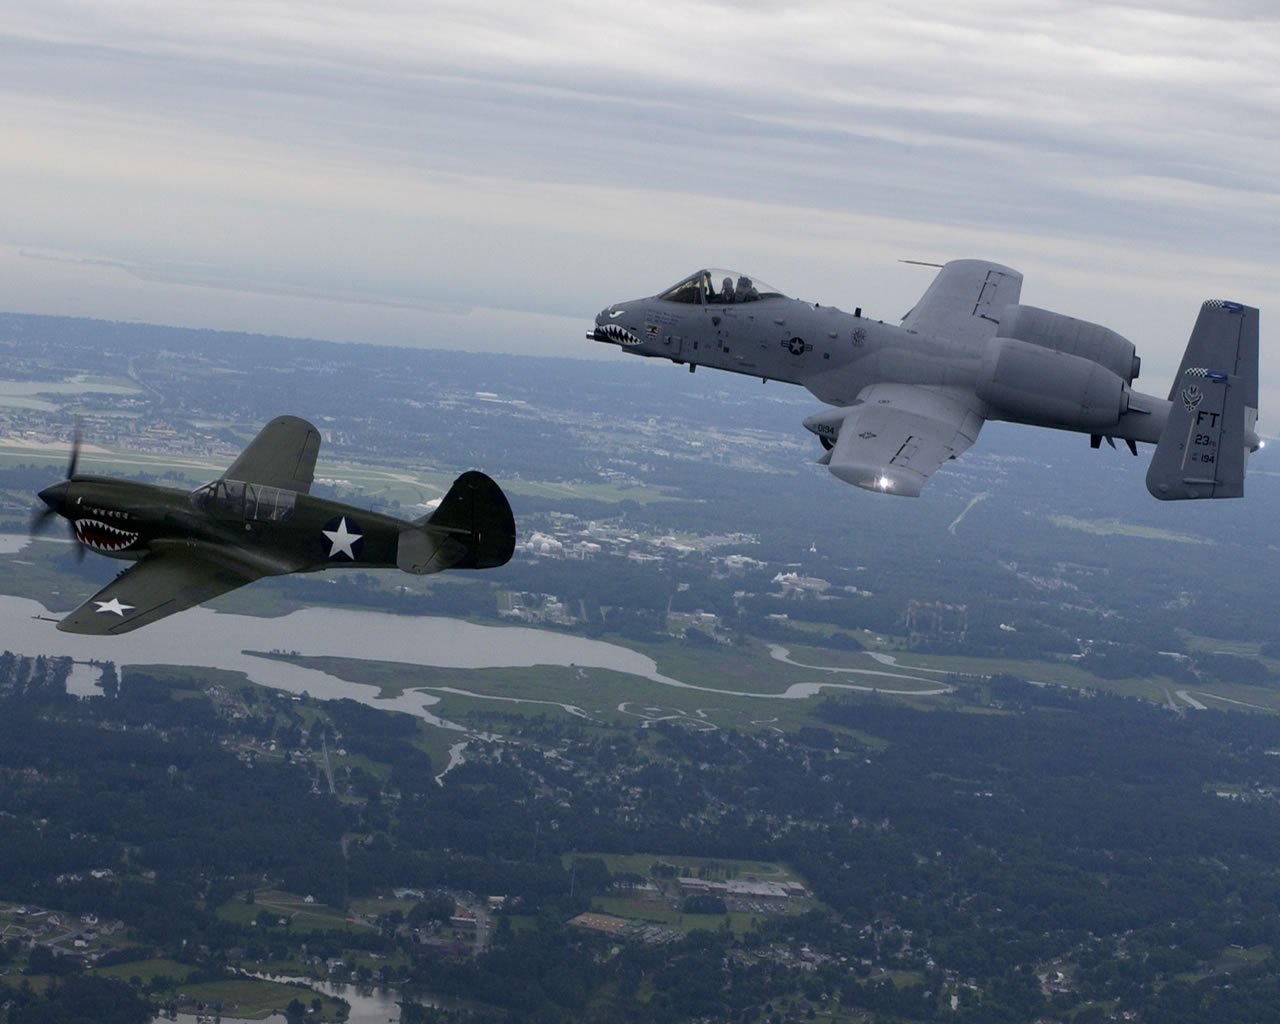 A10 Warthog Military Wallpaper Background 31282 1280x1024